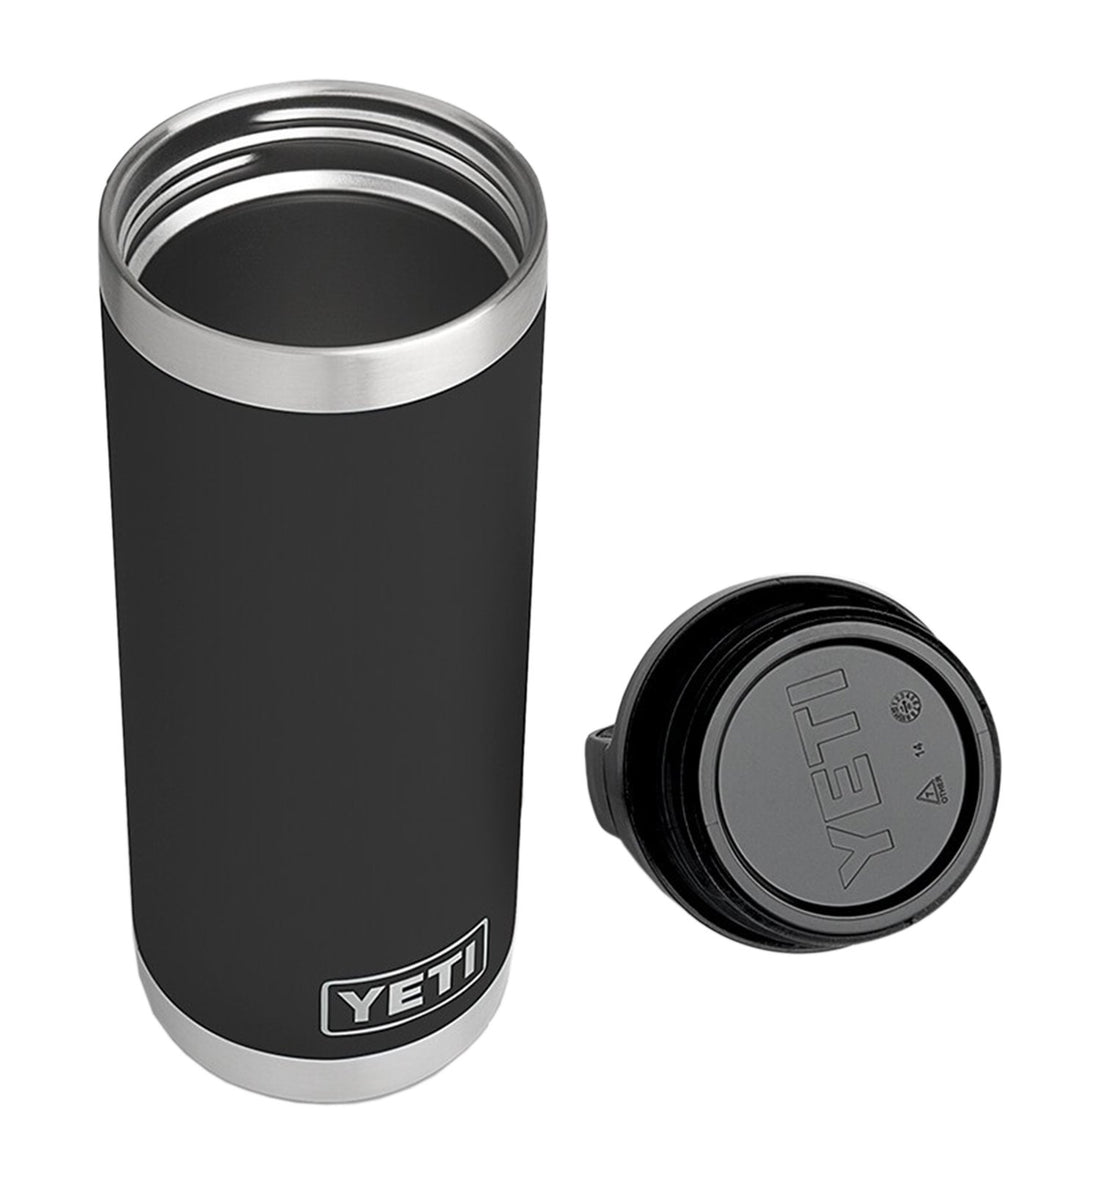 Yeti Rambler 18oz Bottle - Outdoor Living/Travel - Iron and Resin